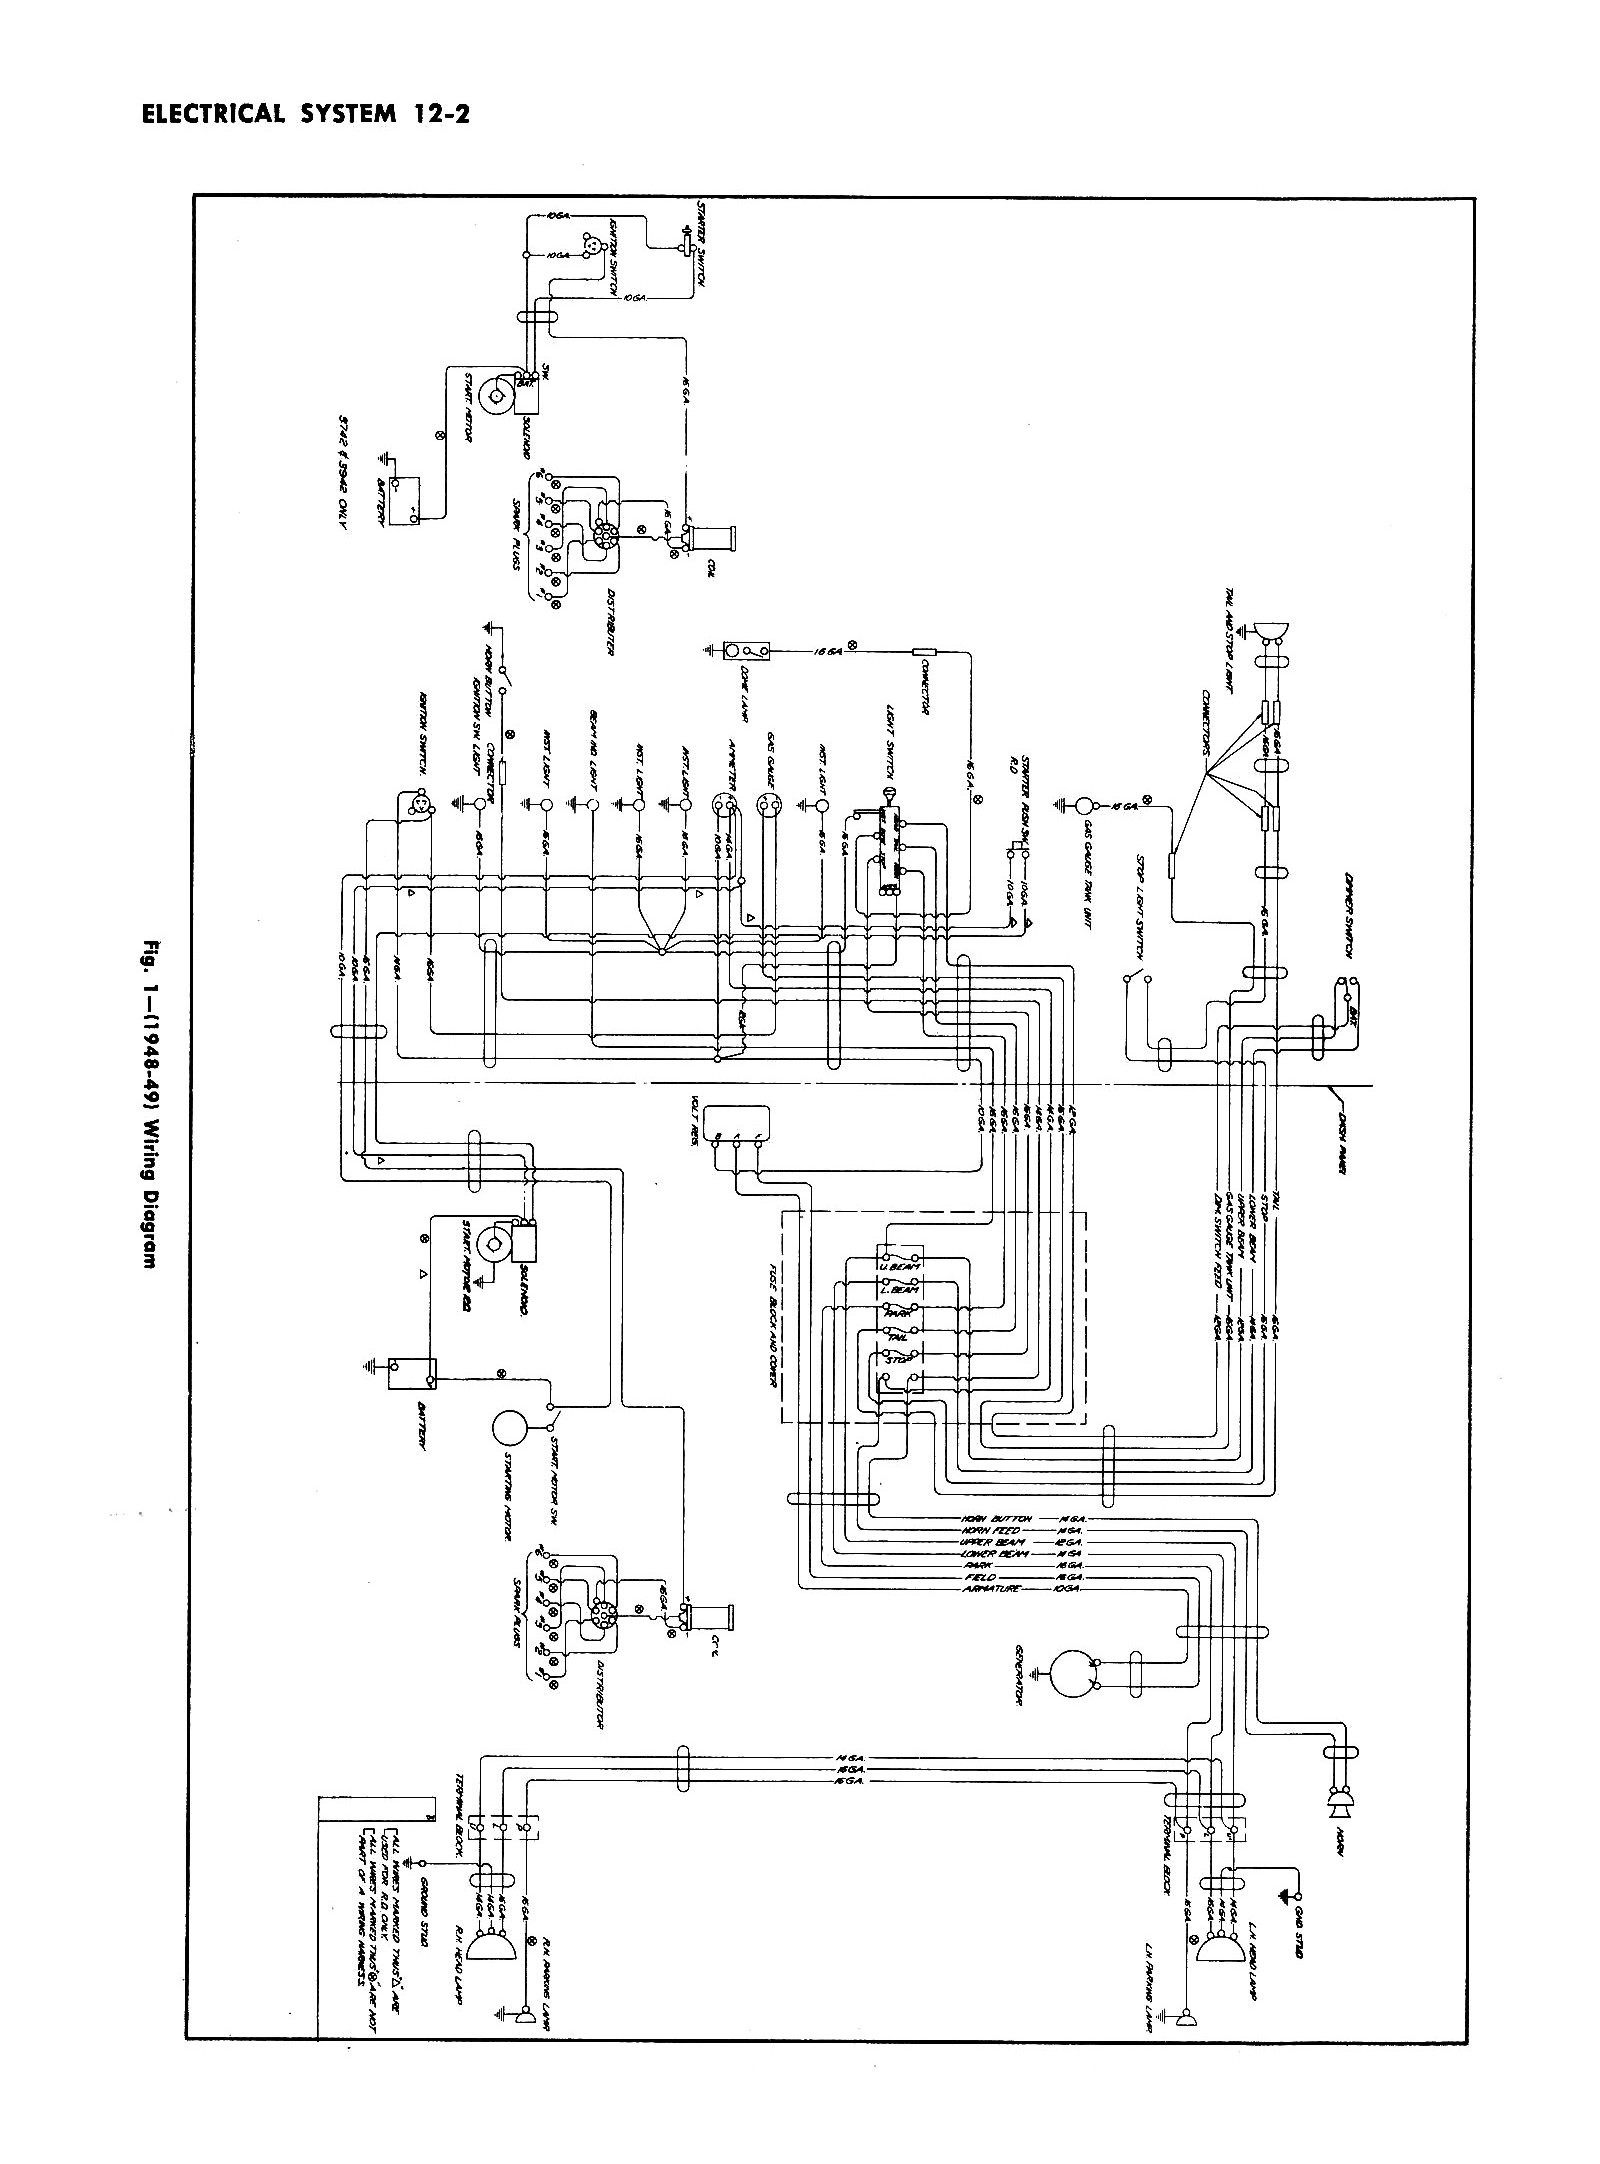 chevy wiring diagrams rh chevy oldcarmanualproject com GM Factory Wiring Diagram GM Car Wiring Diagram